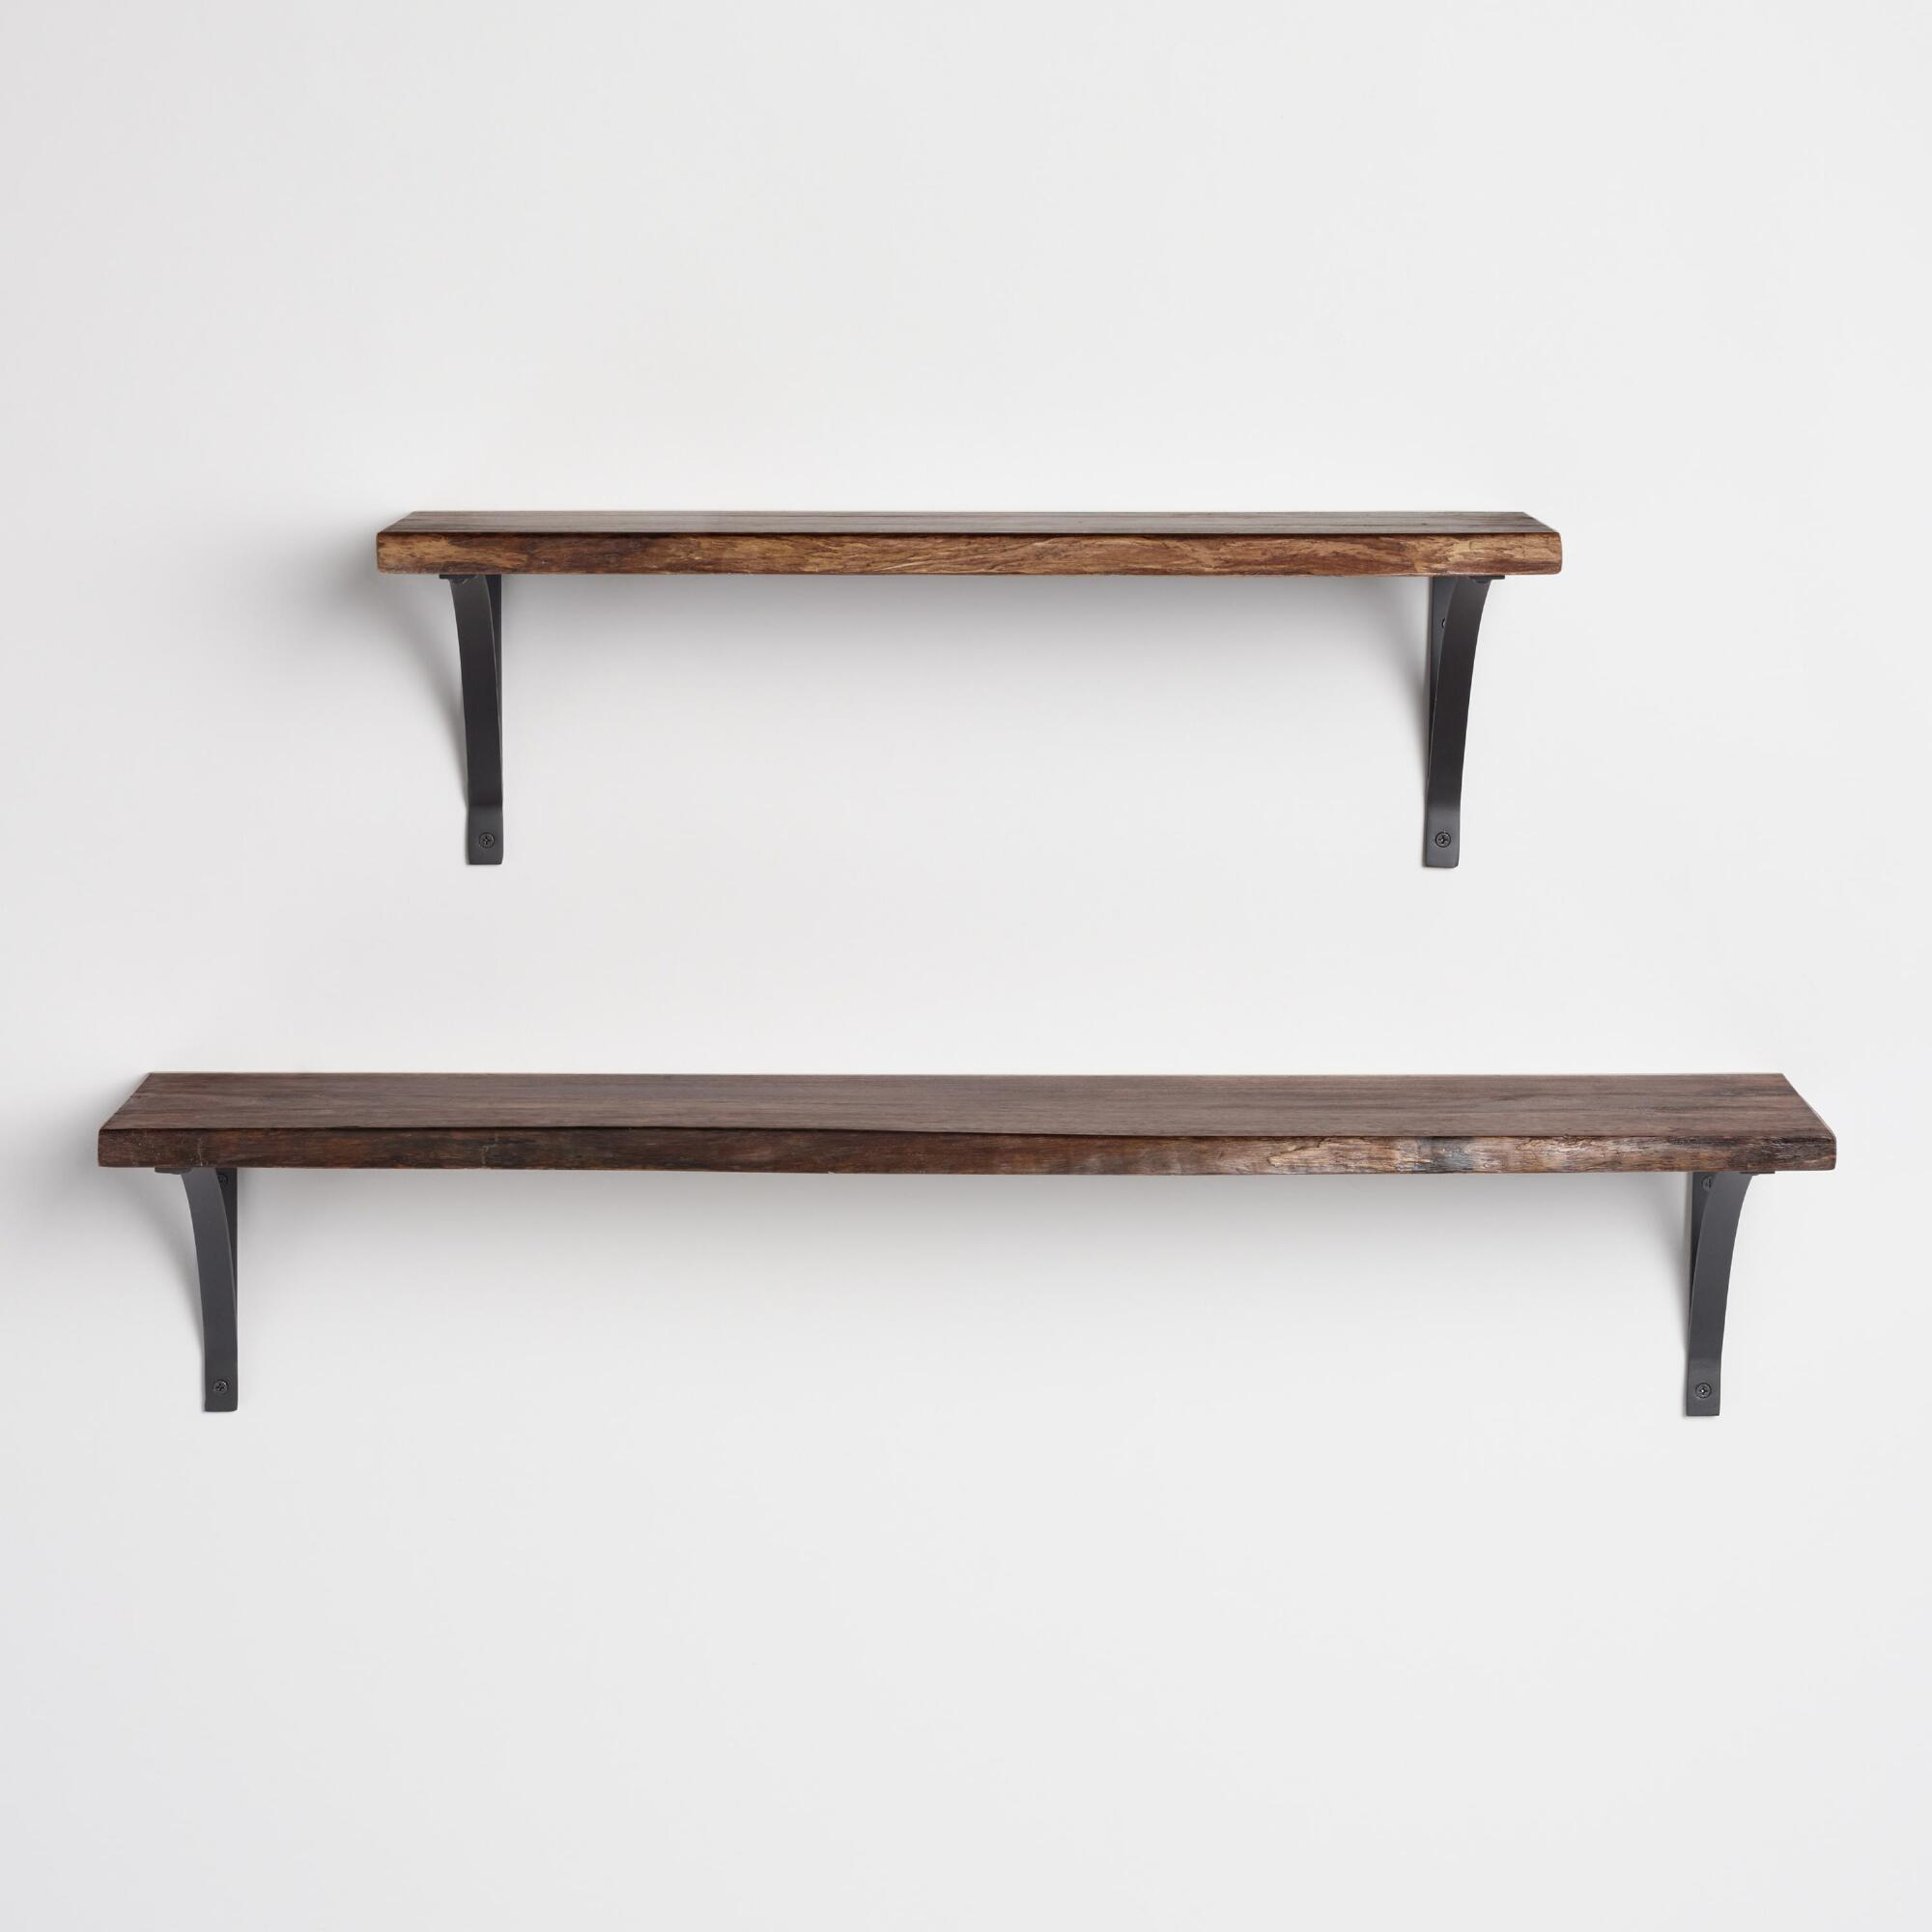 Organic edge wood mix match wall shelf collection world market - Wall metal shelf ...